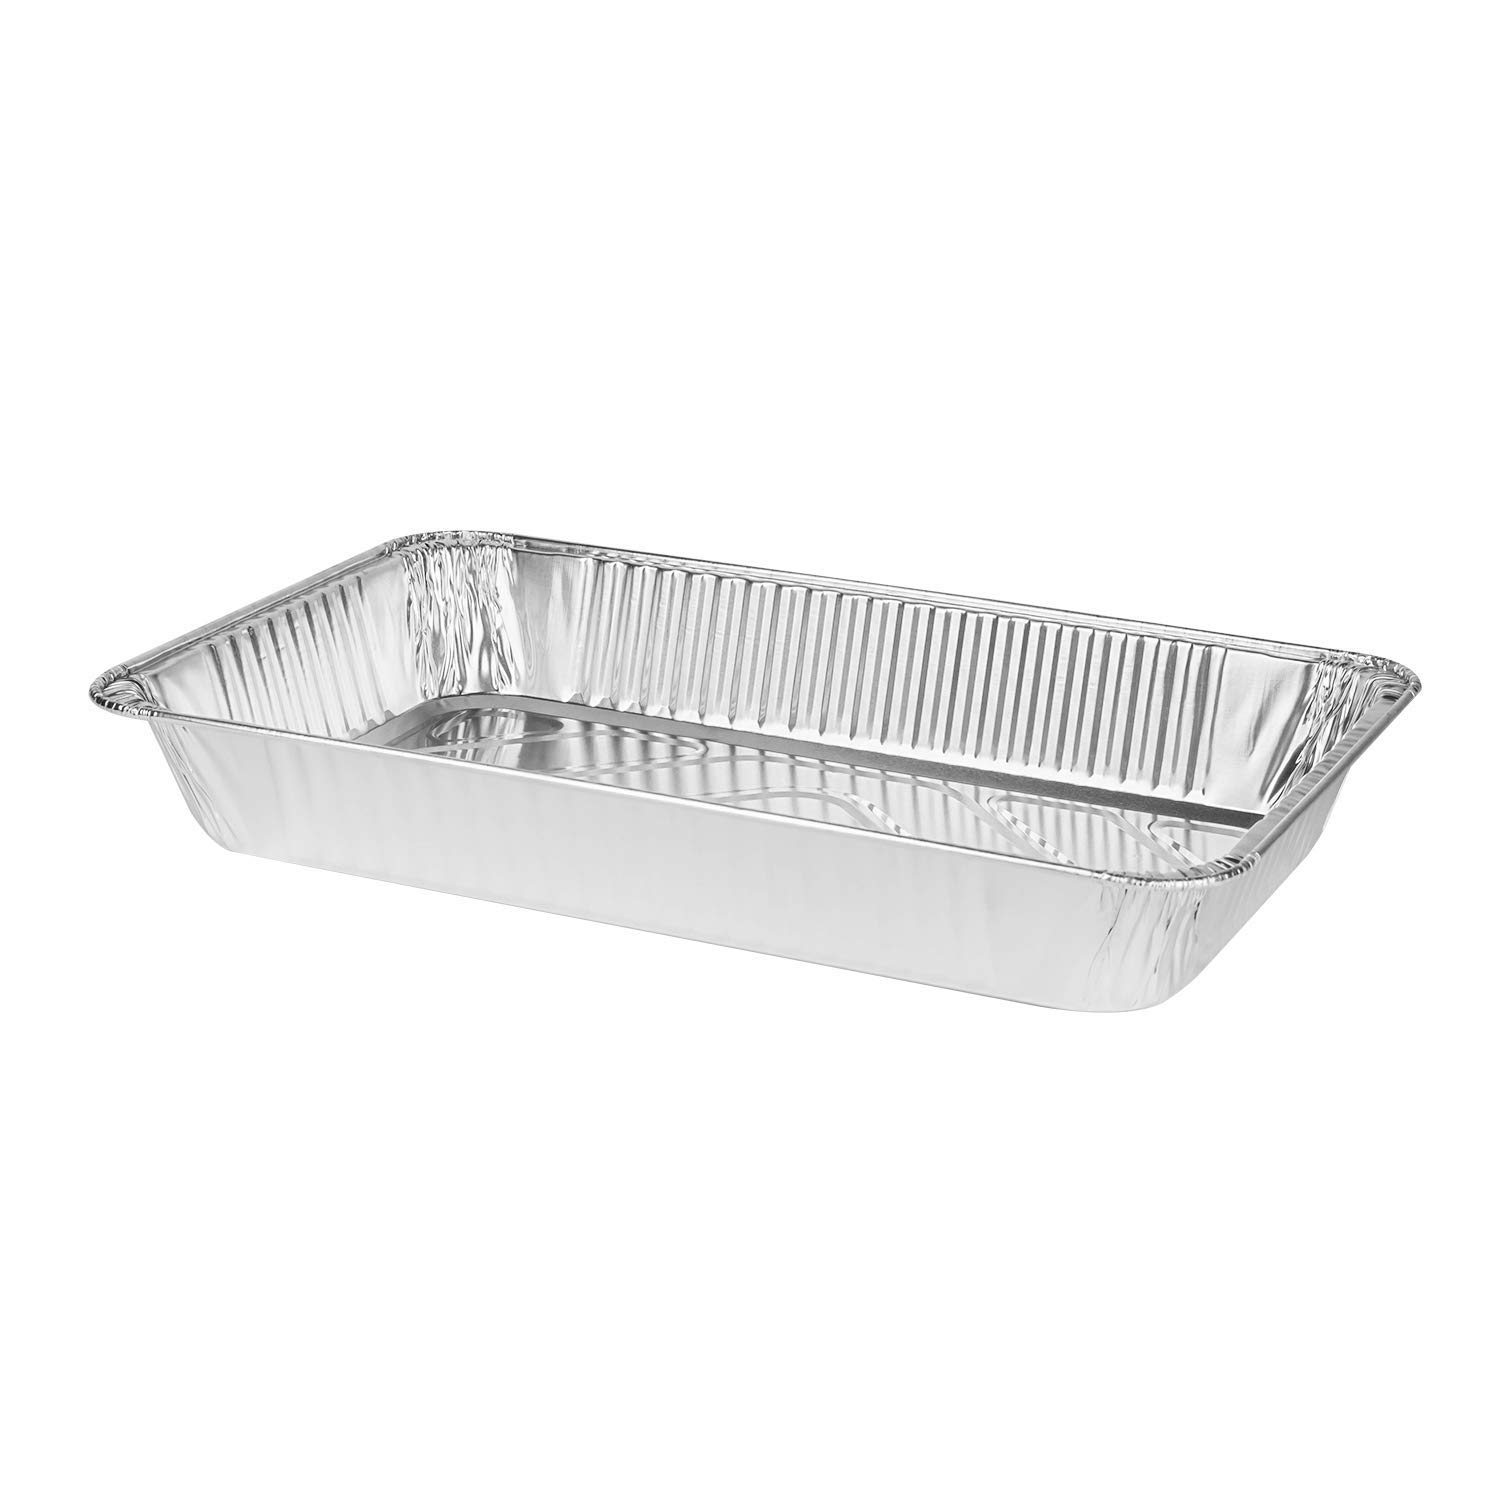 Karat AF-STP105 Standard Aluminum Deep Table Pans (Case of 50)